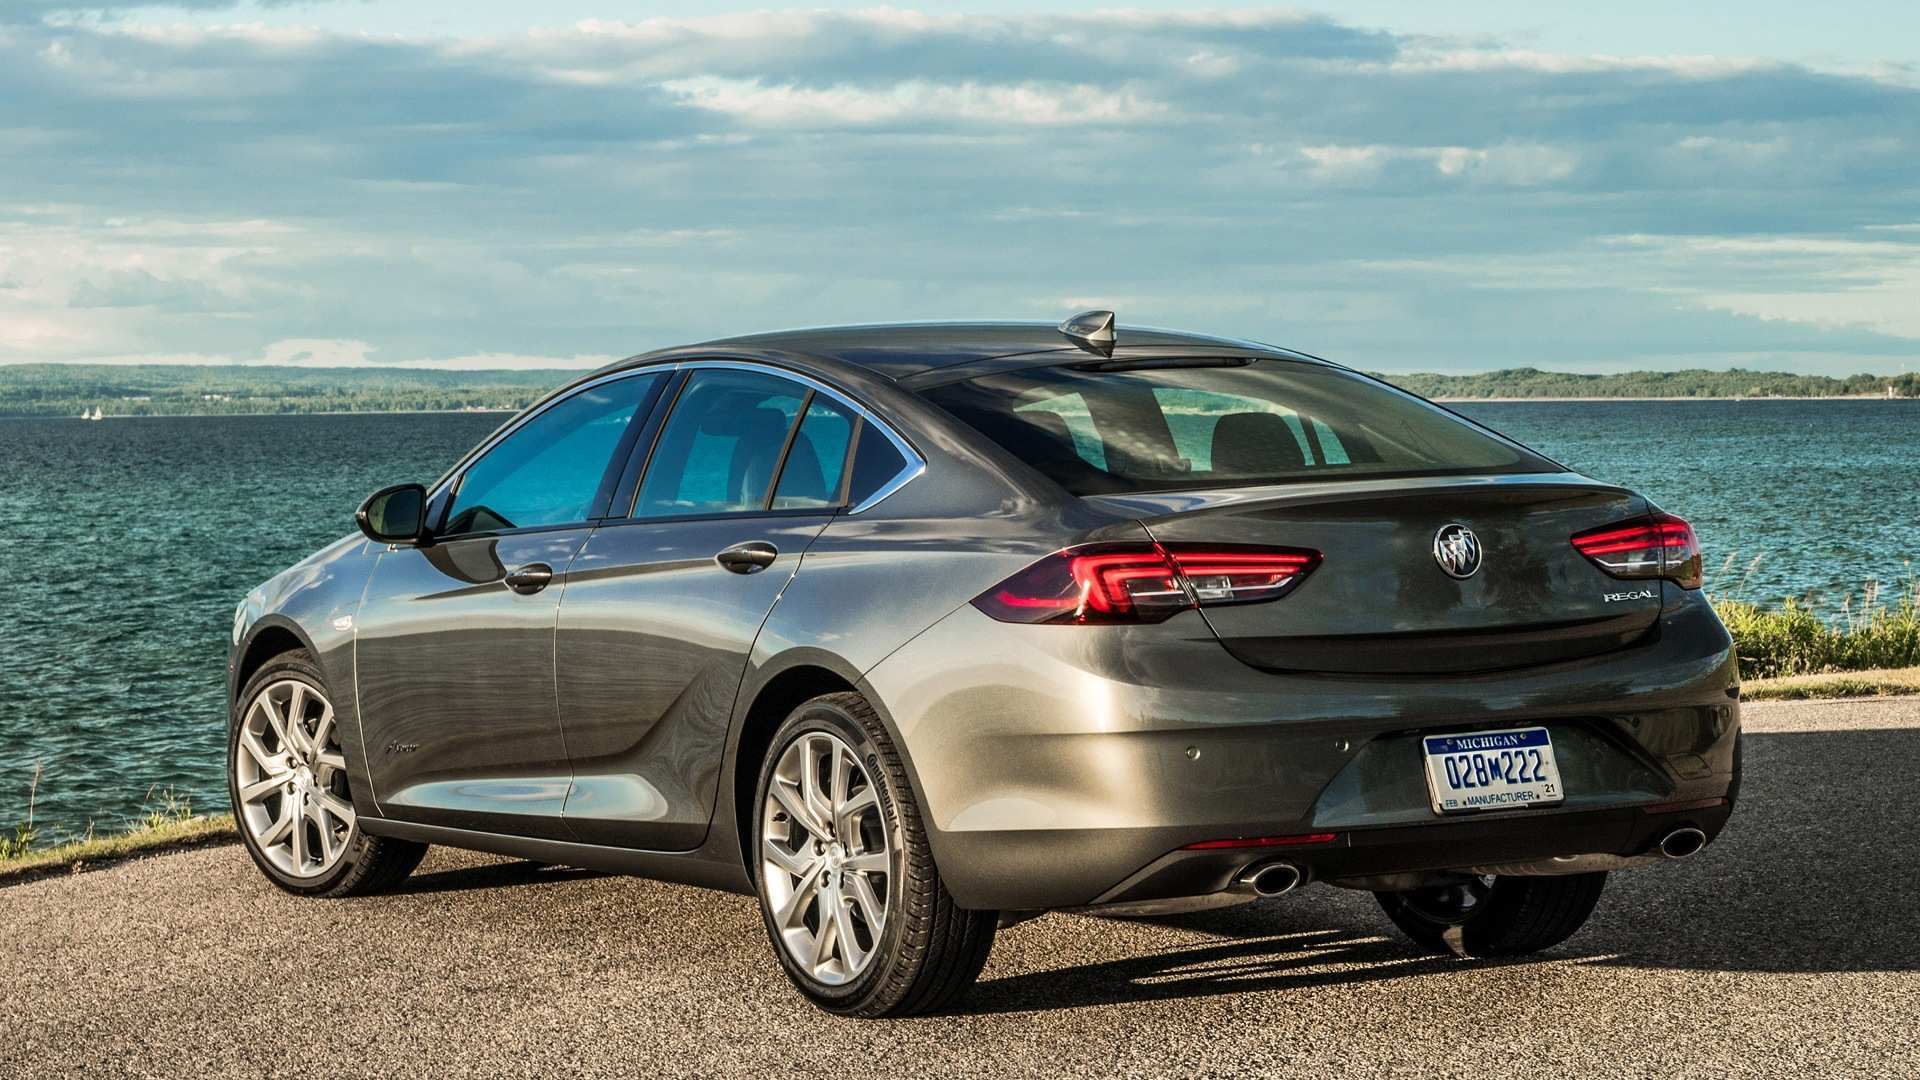 95 Best Review 2019 Buick Regal Avenir First Drive Wallpaper with 2019 Buick Regal Avenir First Drive